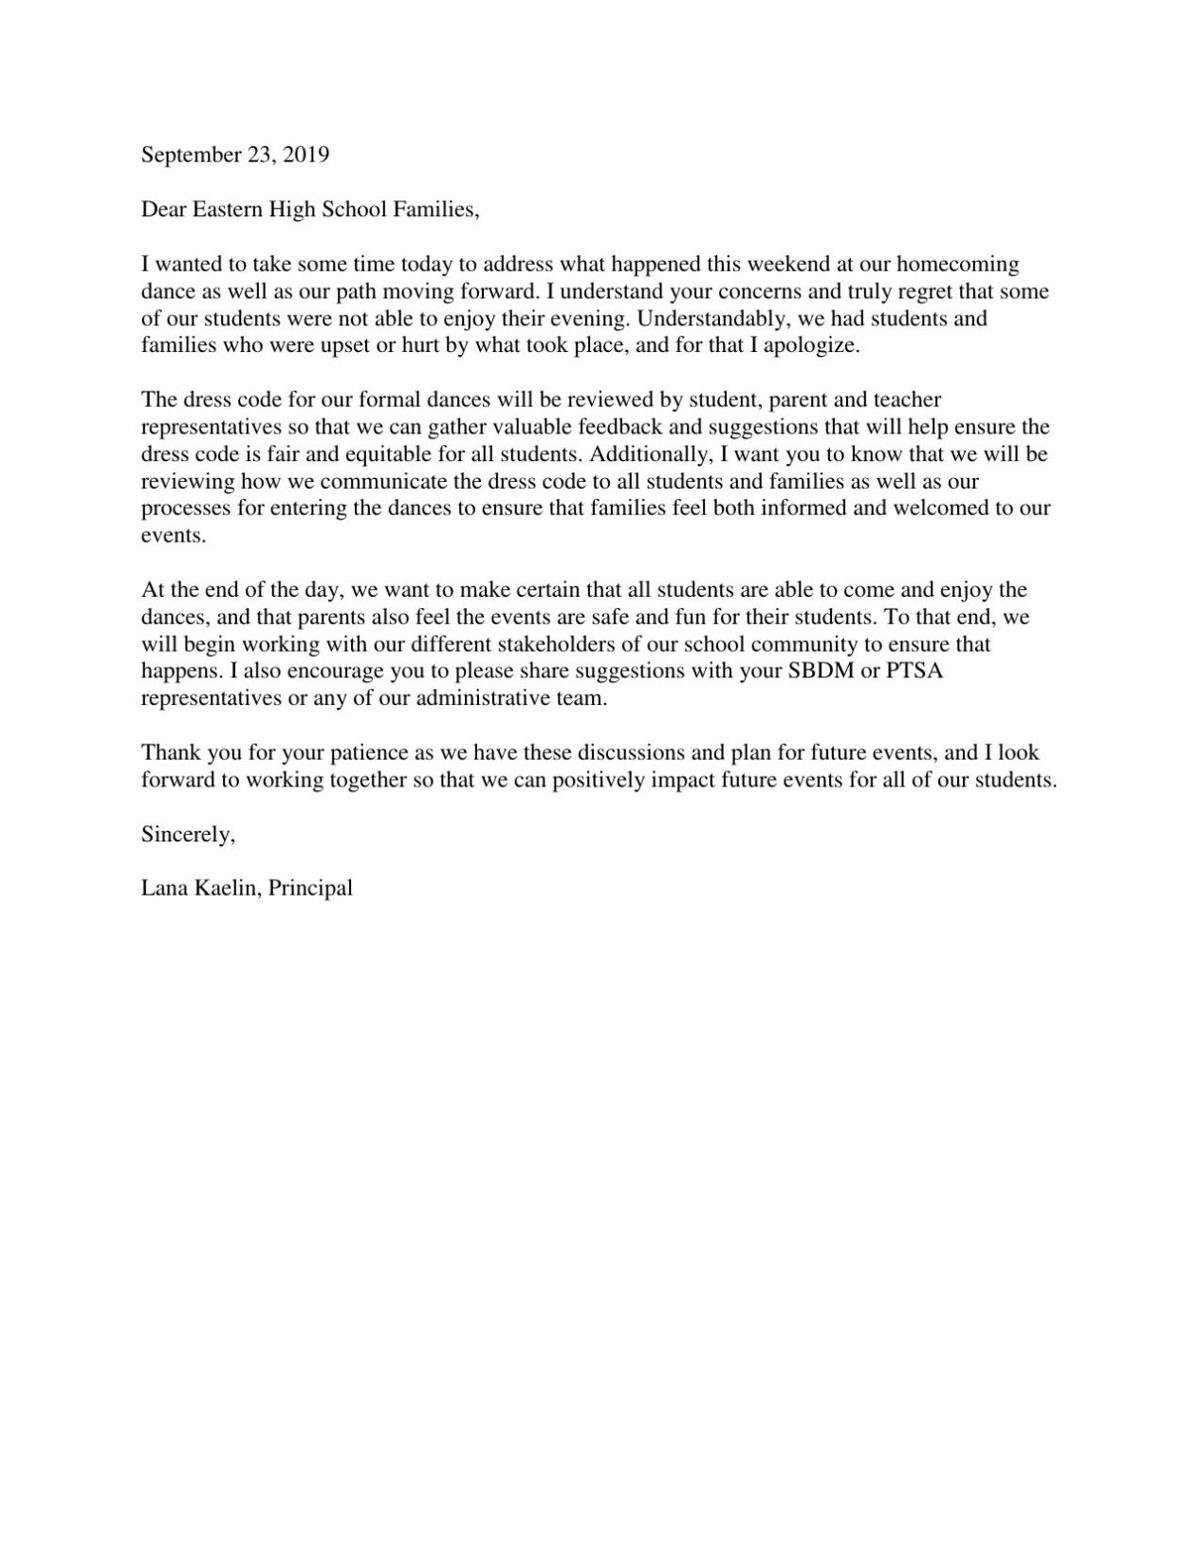 Eastern High School Principal Lana Kaelin letter to parents about dress code 9-23-19.pdf